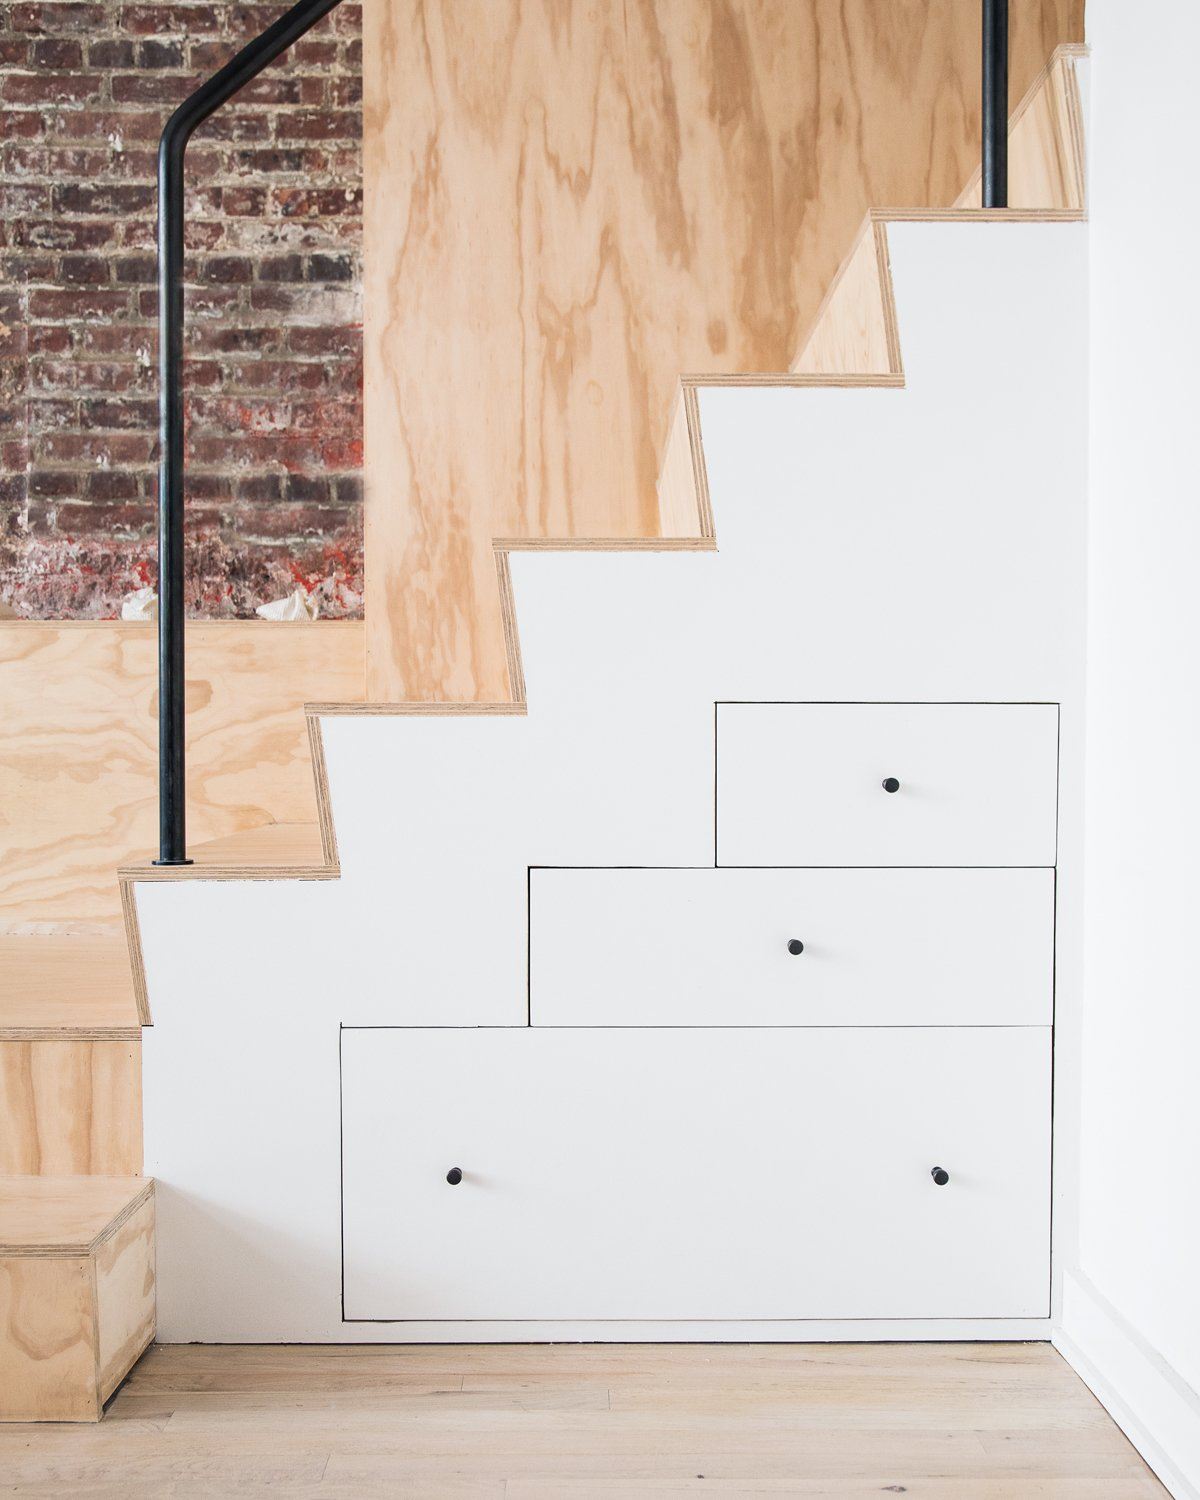 Built in drawers in base of plywood stair Tagged: Staircase, Wood Tread, and Metal Railing.  Wells Fargo Loft by Jeff Jordan Architects